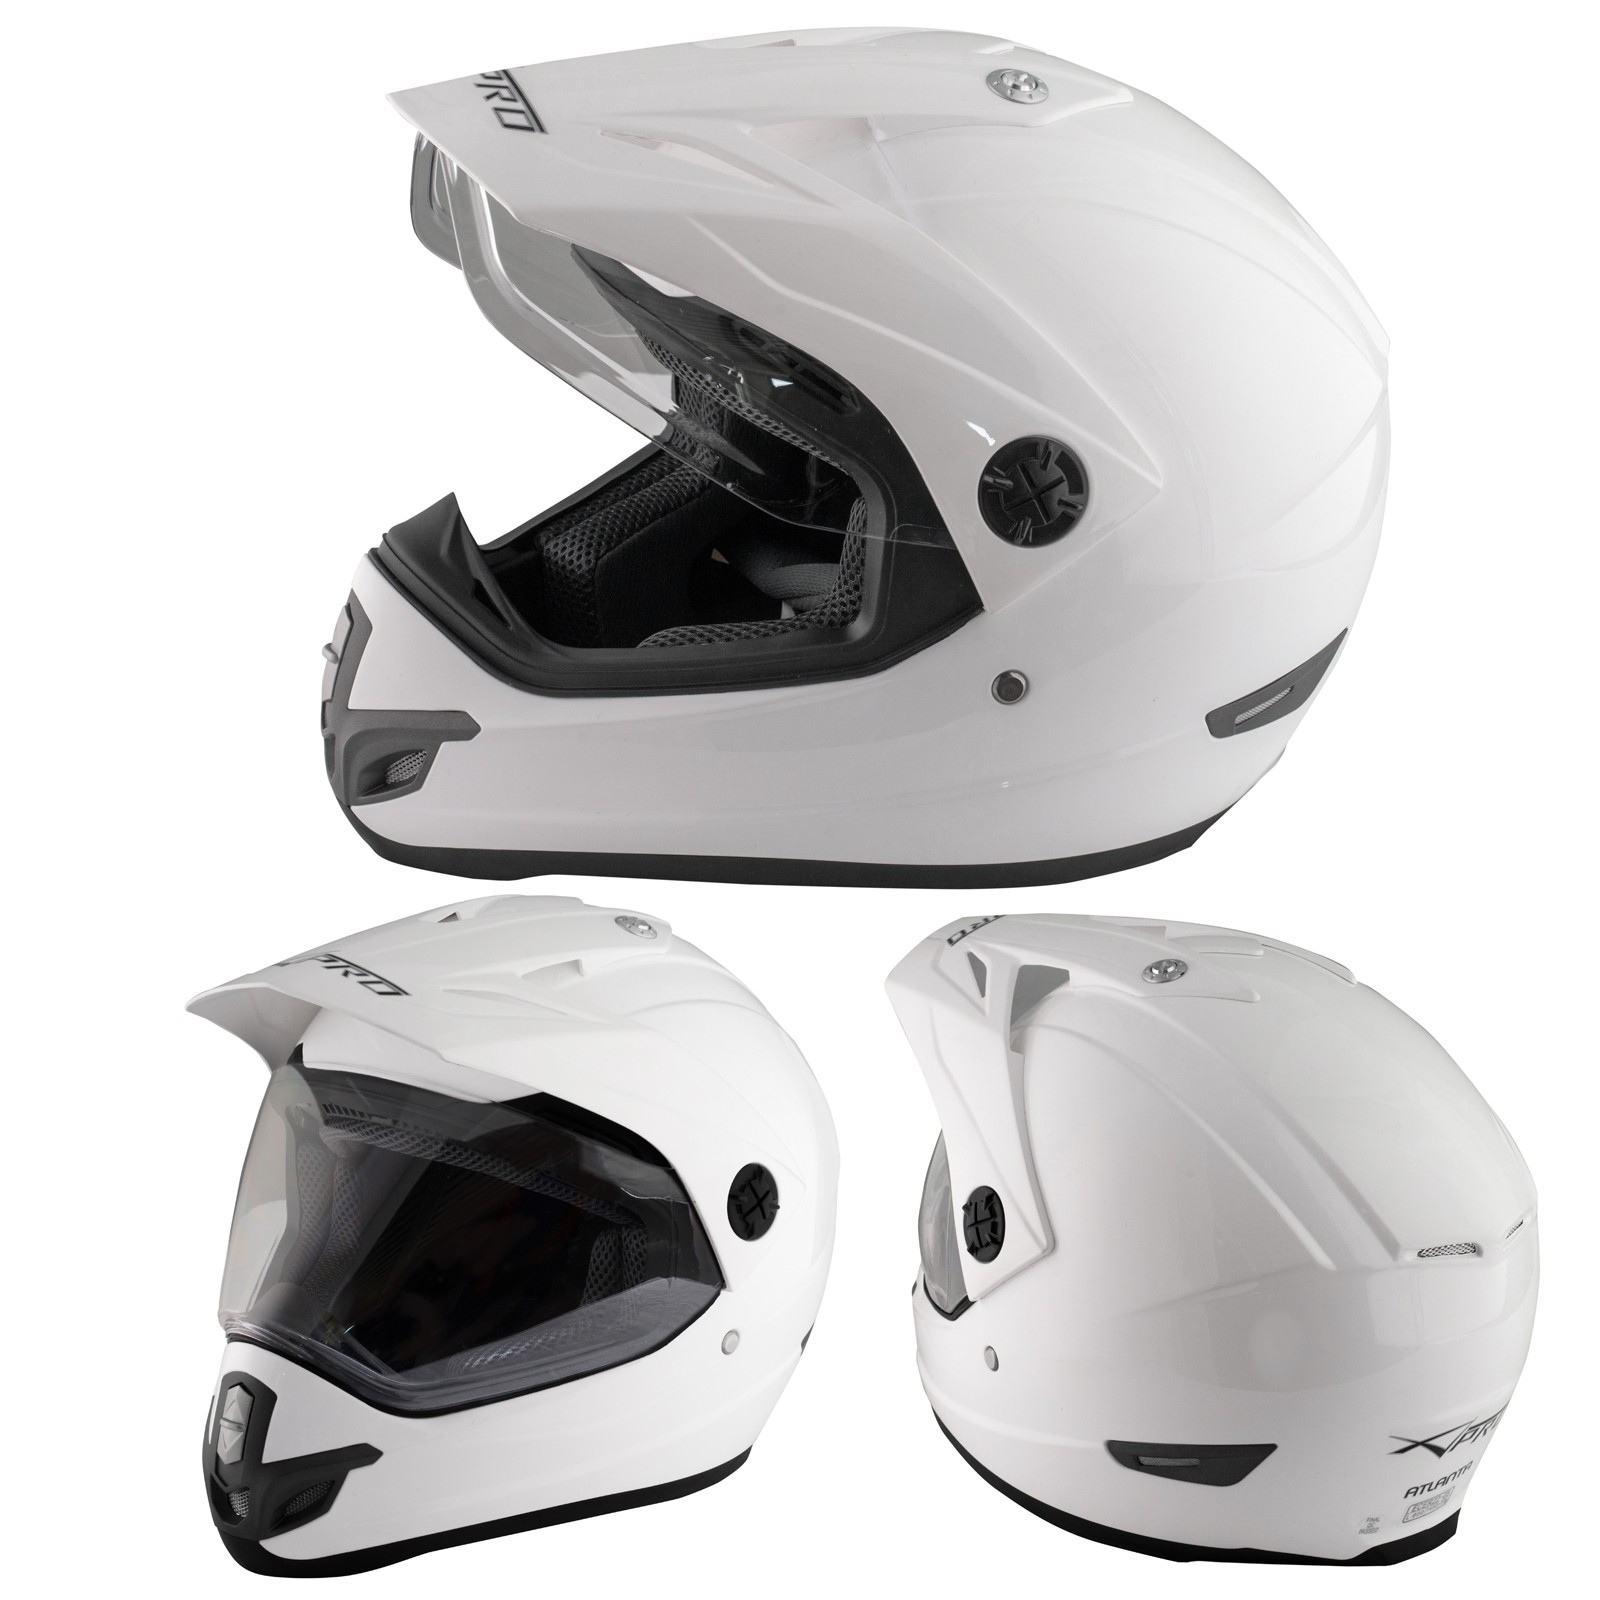 Casco Moto Cross Enduro Trial Quad Off Road Visiera Anti Nebbia Bianco